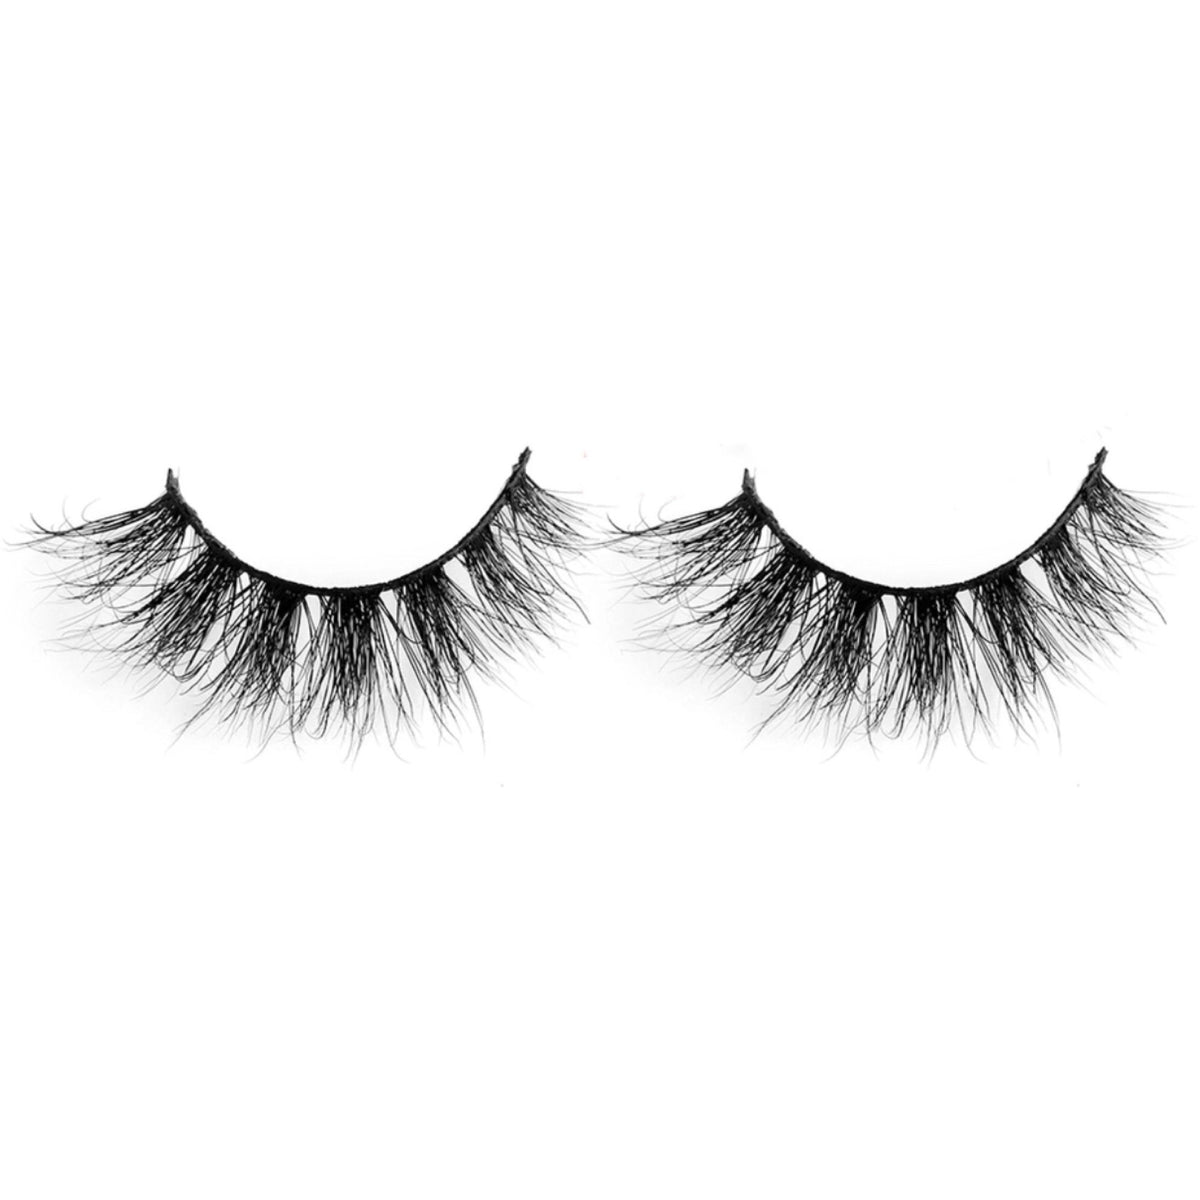 Just Right 3 D Handmade Mink Lashes Comes With Applicator - lexinoelbeauty.com